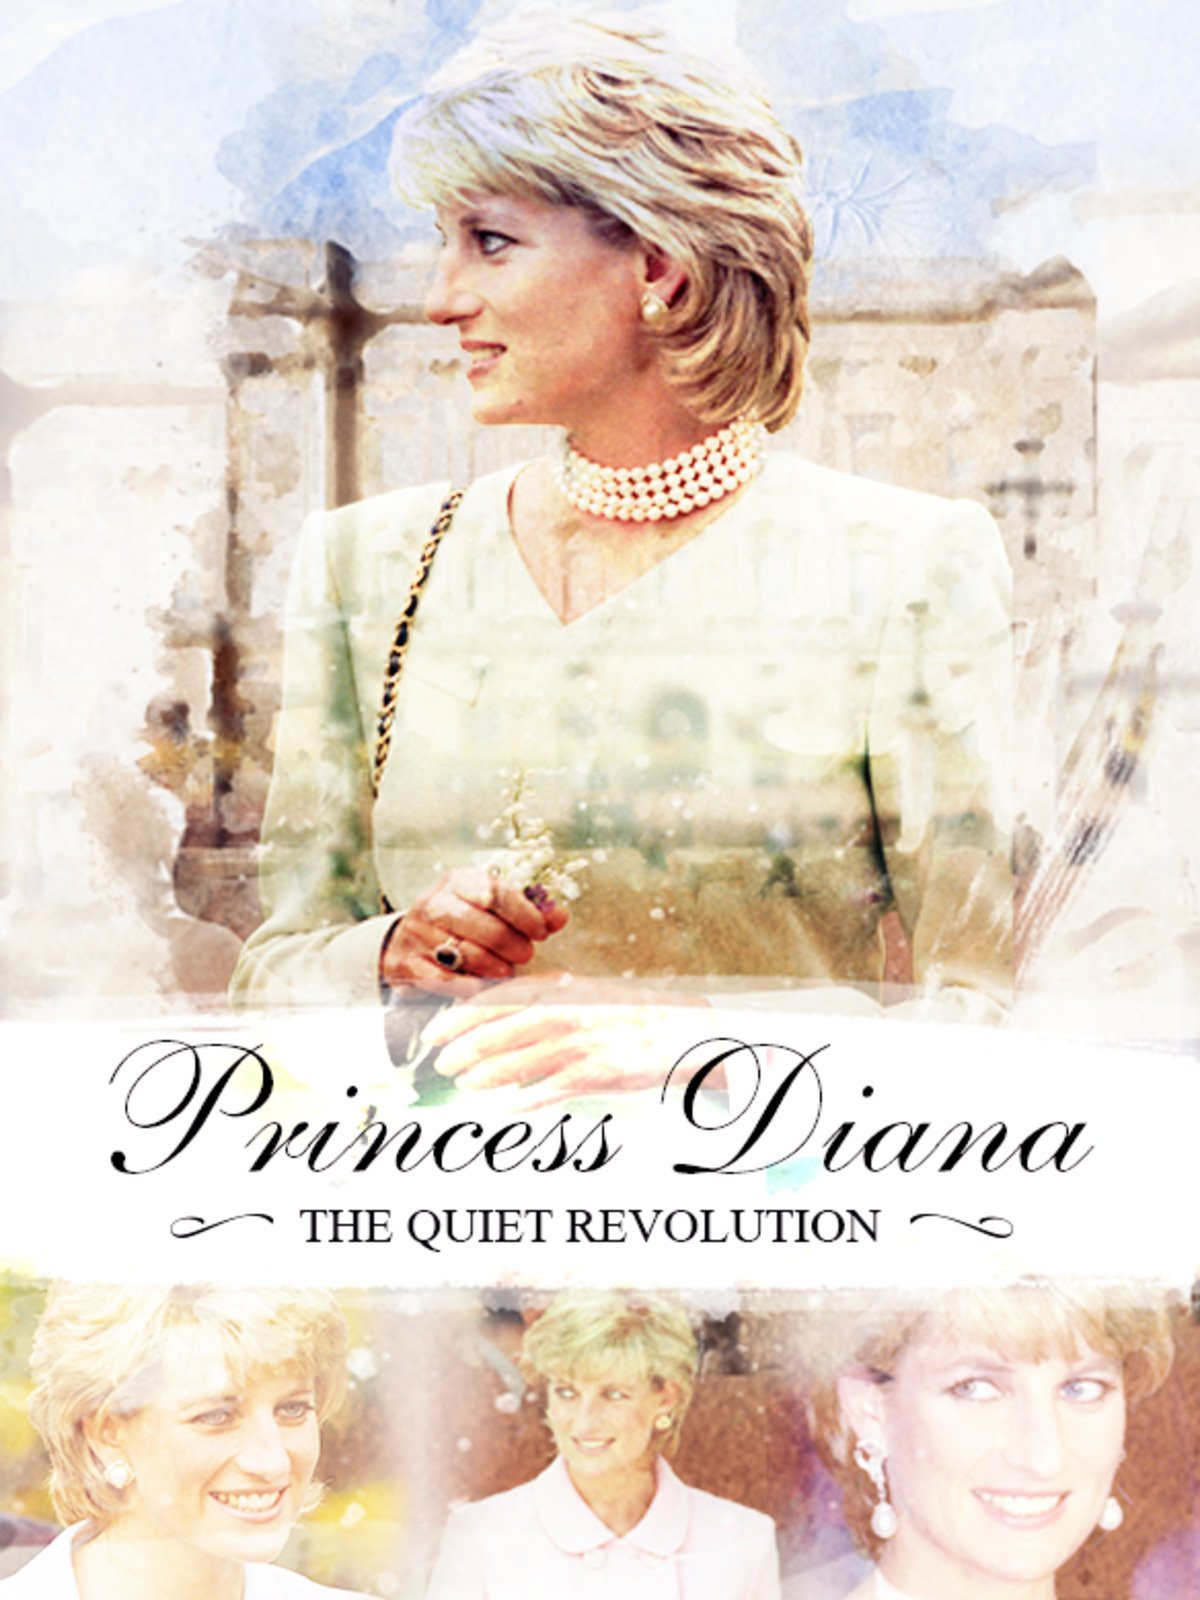 Princess Diana: The Quiet Revolution